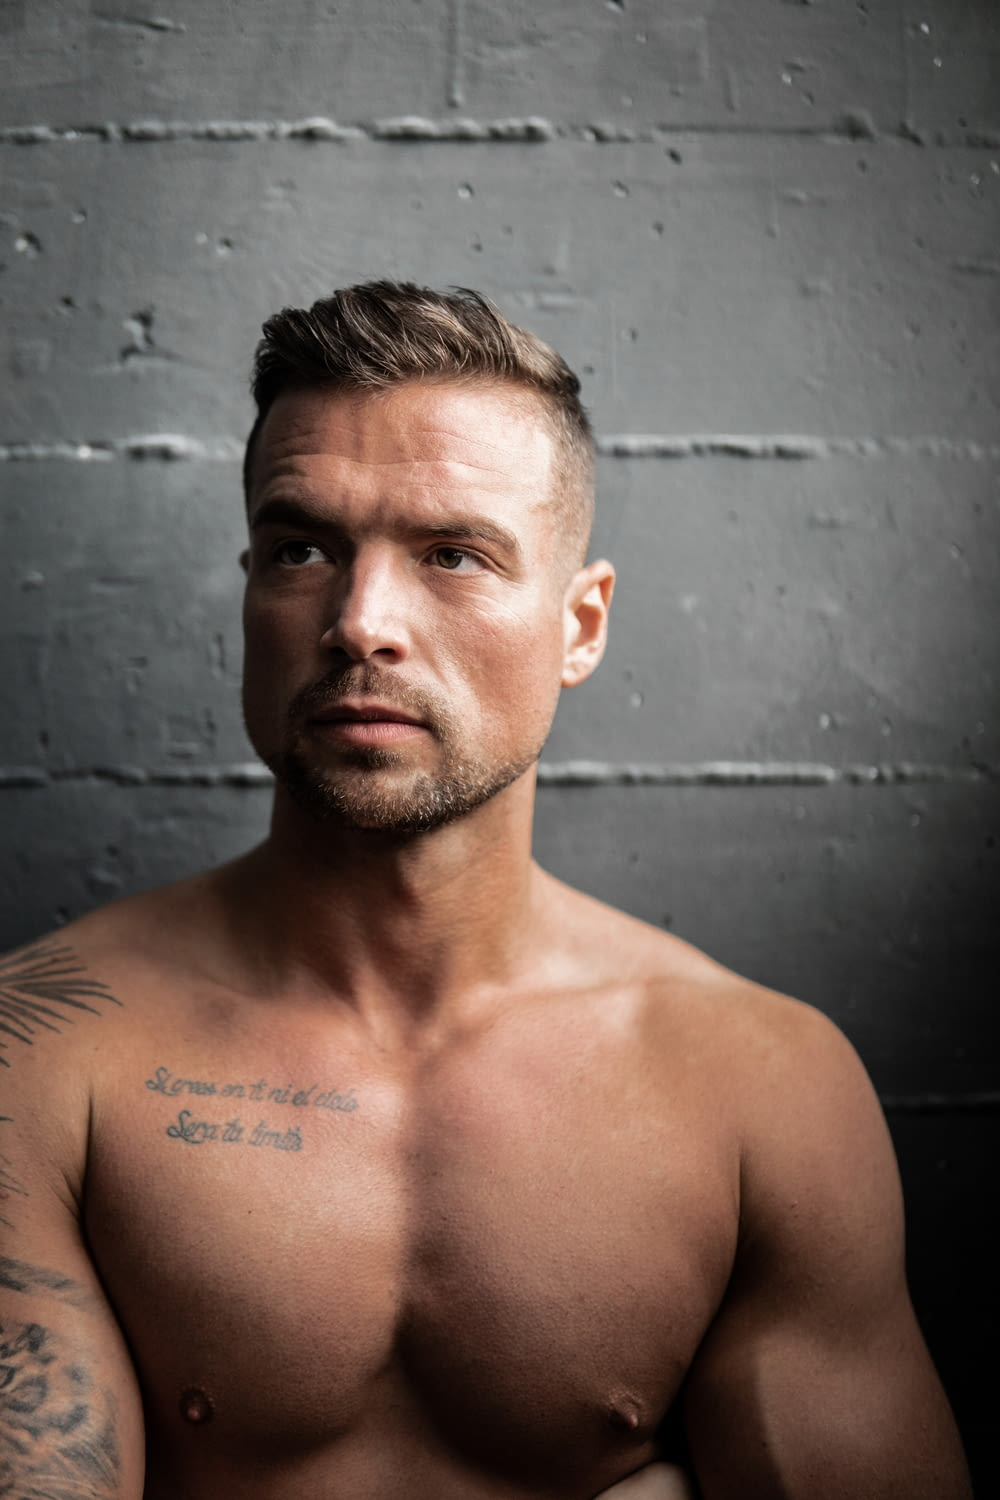 topless man leaning on gray wall